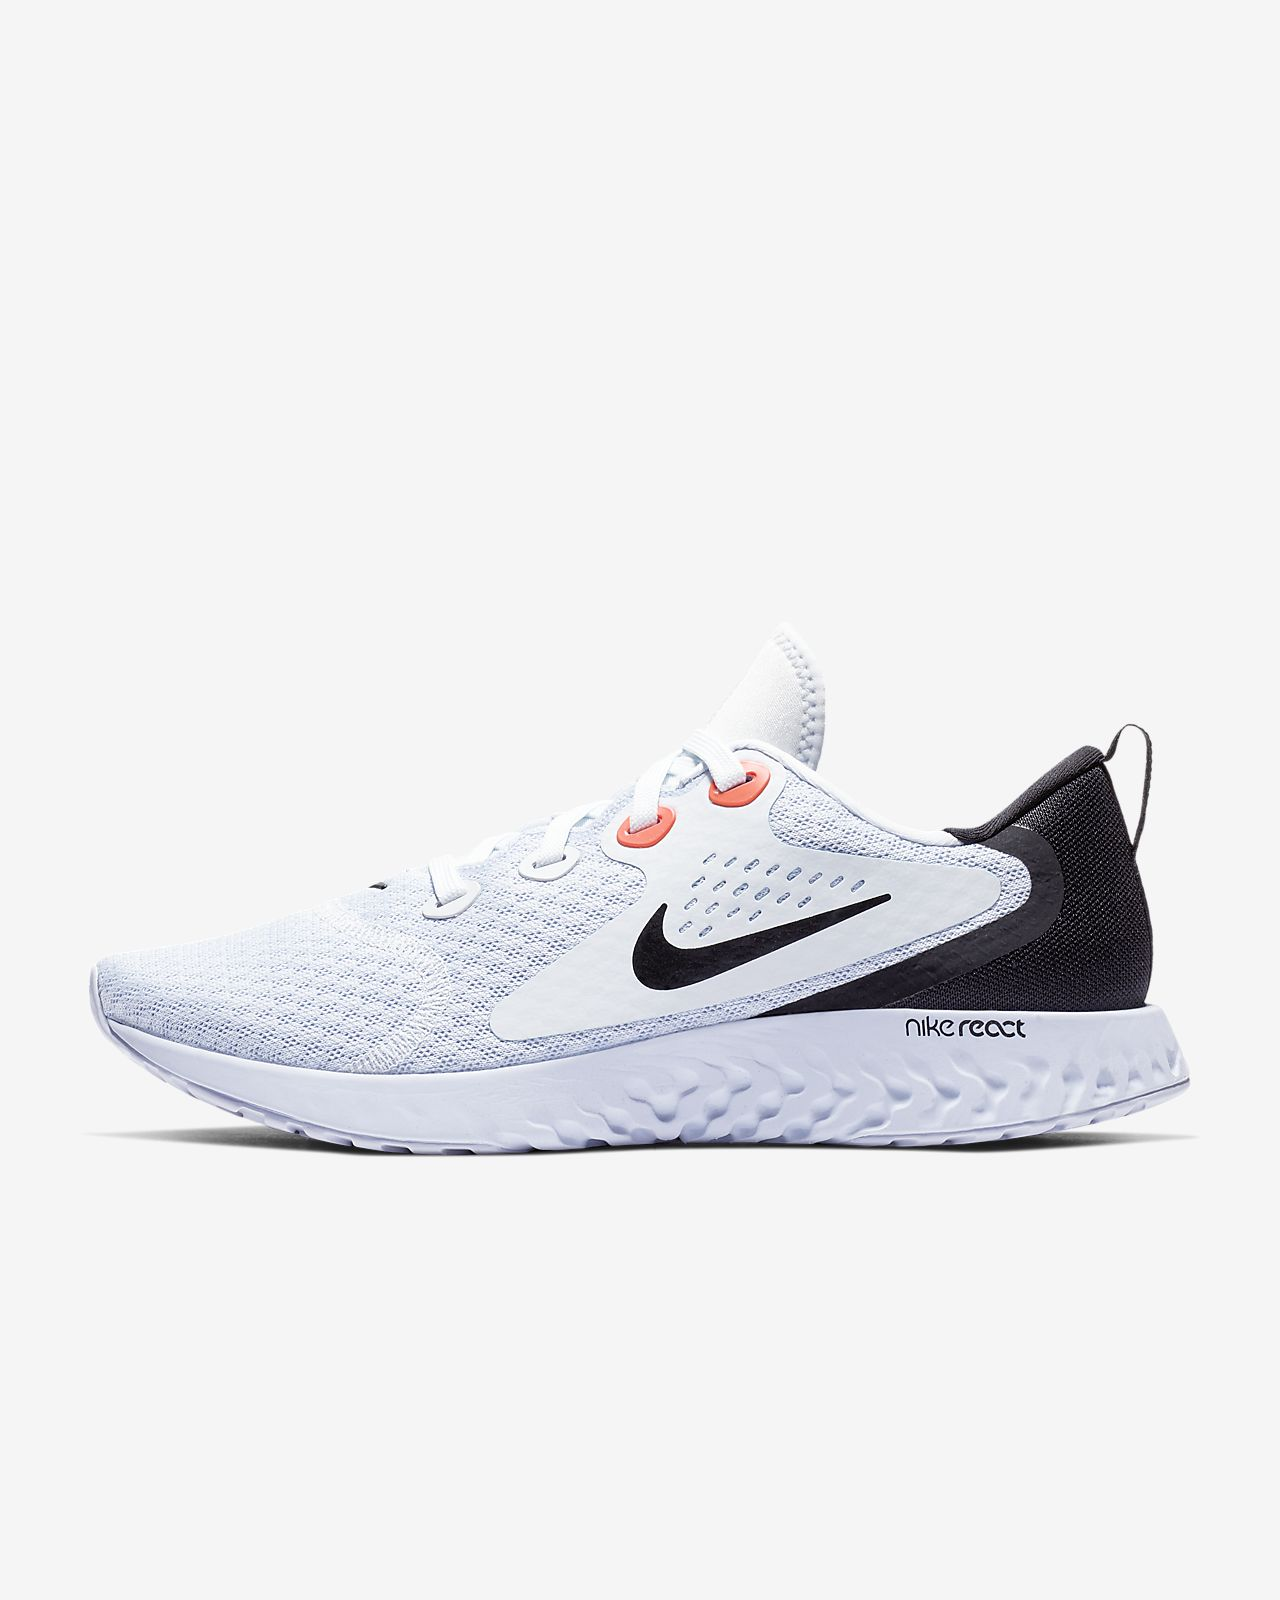 the latest 96a36 fb2ee Womens Running Shoe. Nike Legend React